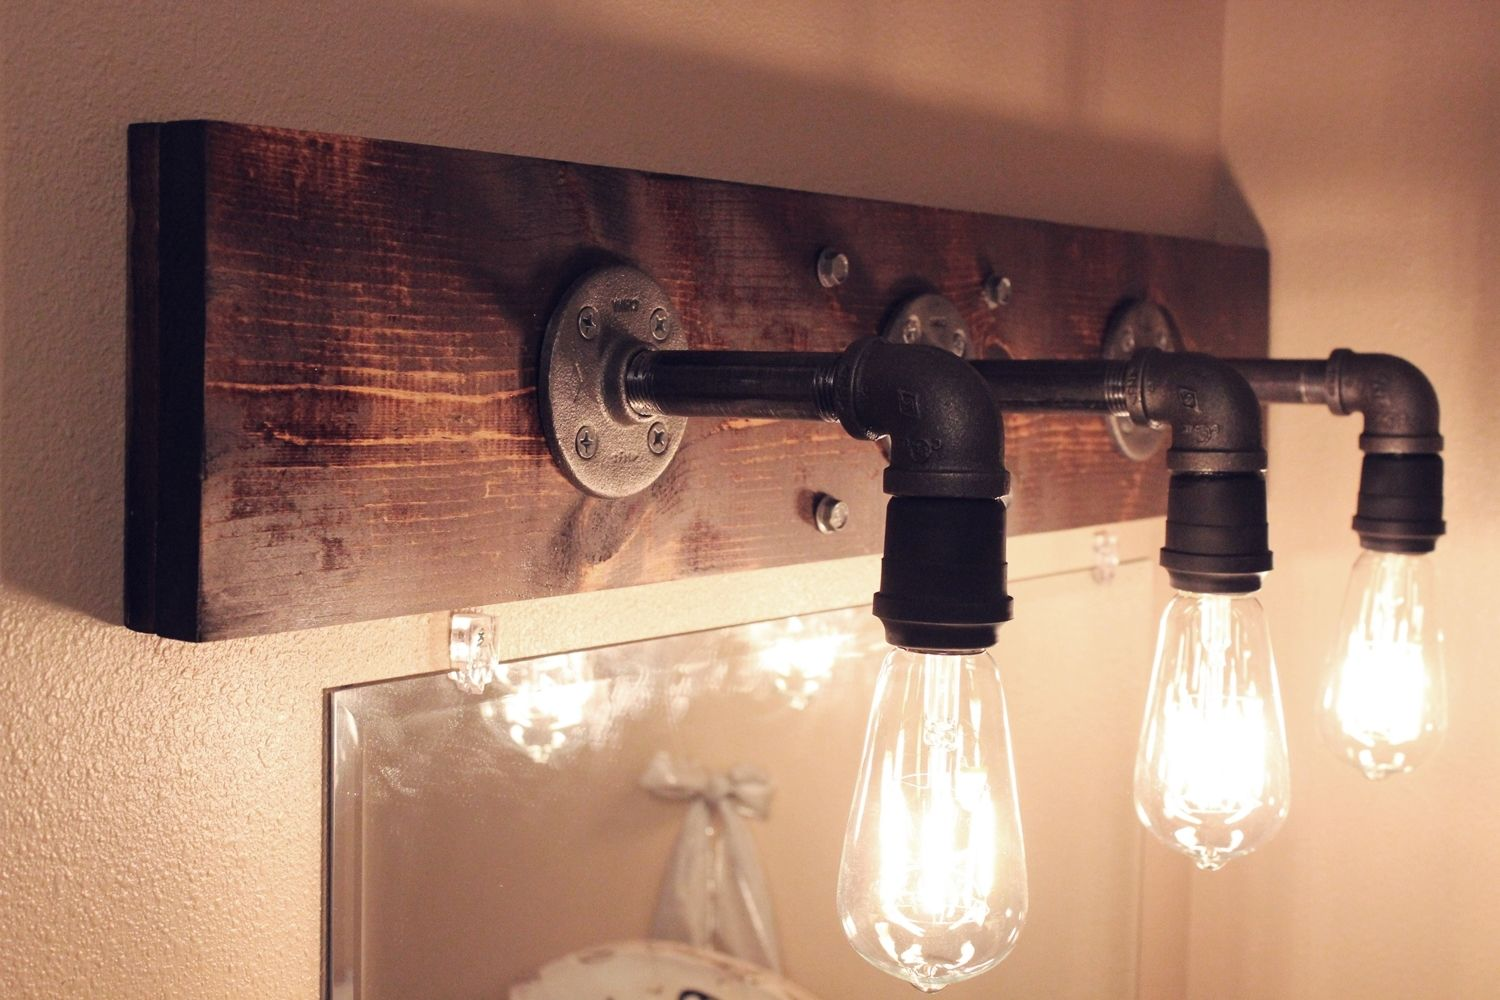 Industrial Style Bathroom Light Fixtures Diy Industrial Bathroom Light Fixtures Home Decor